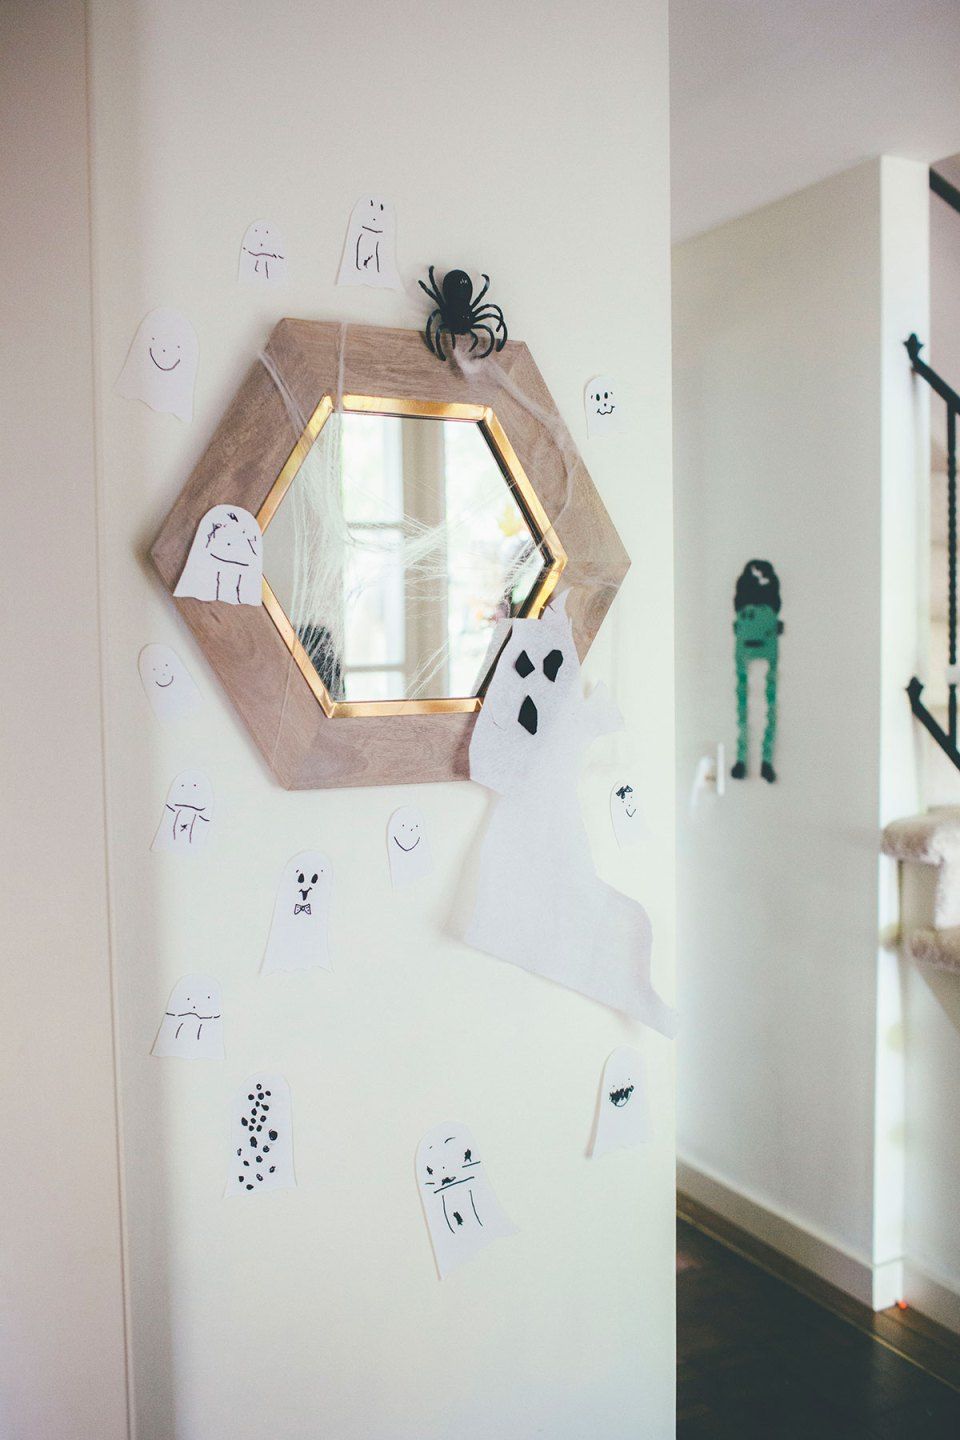 Mirror decorated with paper ghosts and spider webs